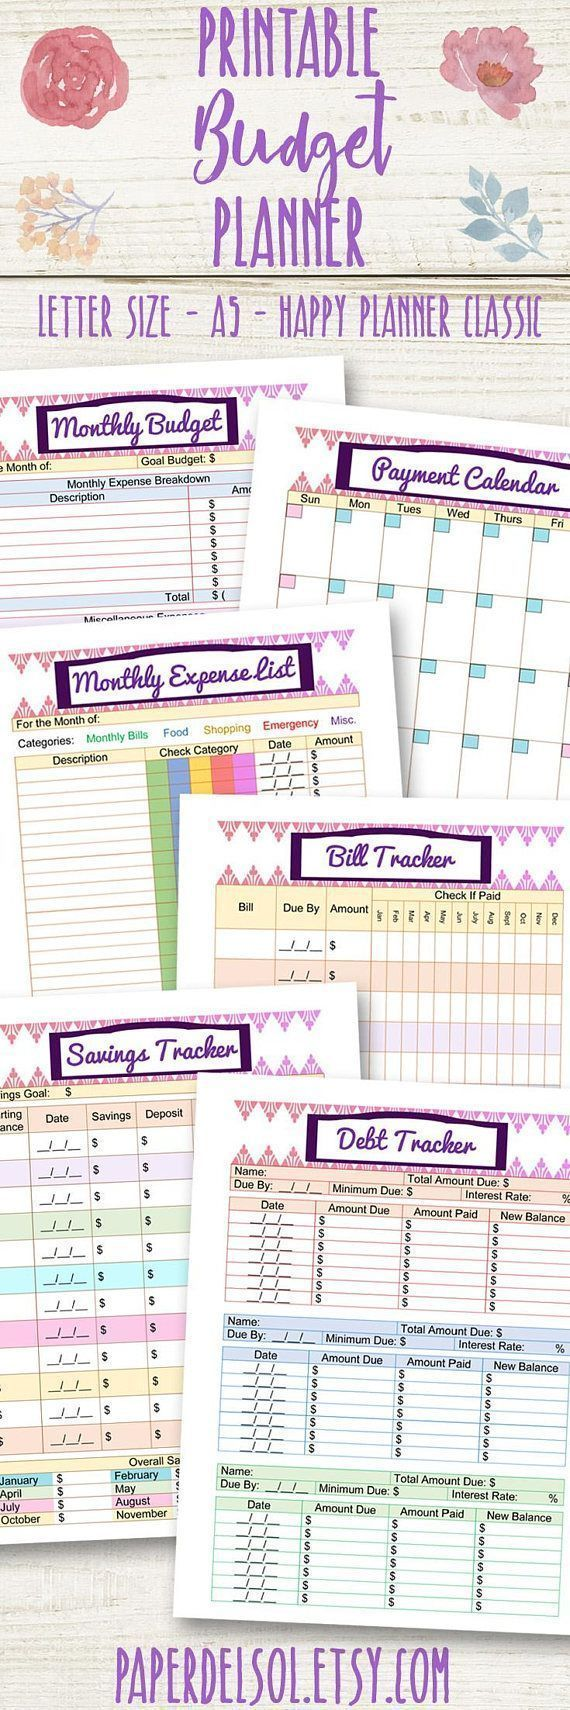 Printable Budget and Finance Planner! Includes all the tools to get you out of debt and work toward your savings goal. Start by writing out your Monthly Budget goals. Use the sheets to find out how much your total expenses are and where your money is going. Next, list out ways you can save and start to keep track towards your savings goal. Keep track of your bills and your income sources. Finally use the monthly Payment Calendar to write out your credits and debits. #ad #budget #finance…